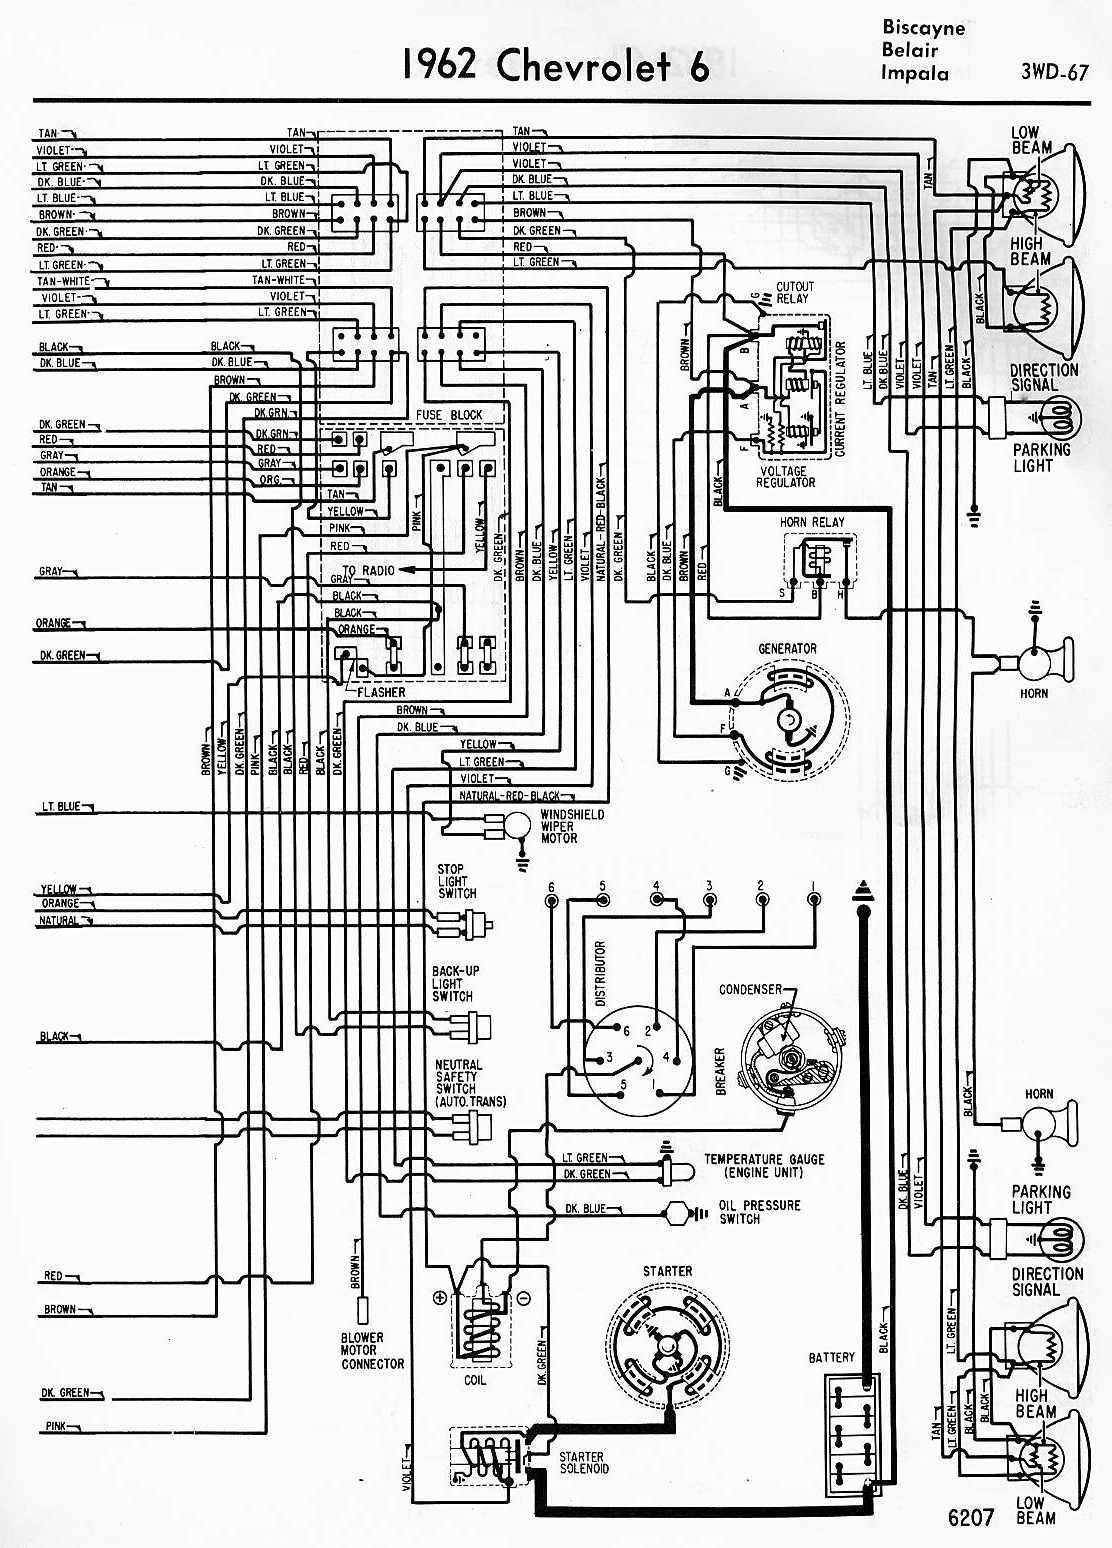 64 gto wiper motor wiring diagram simple wiring schema 1968 camaro wiring diagram 64 gto wiper motor wiring diagram [ 1112 x 1548 Pixel ]